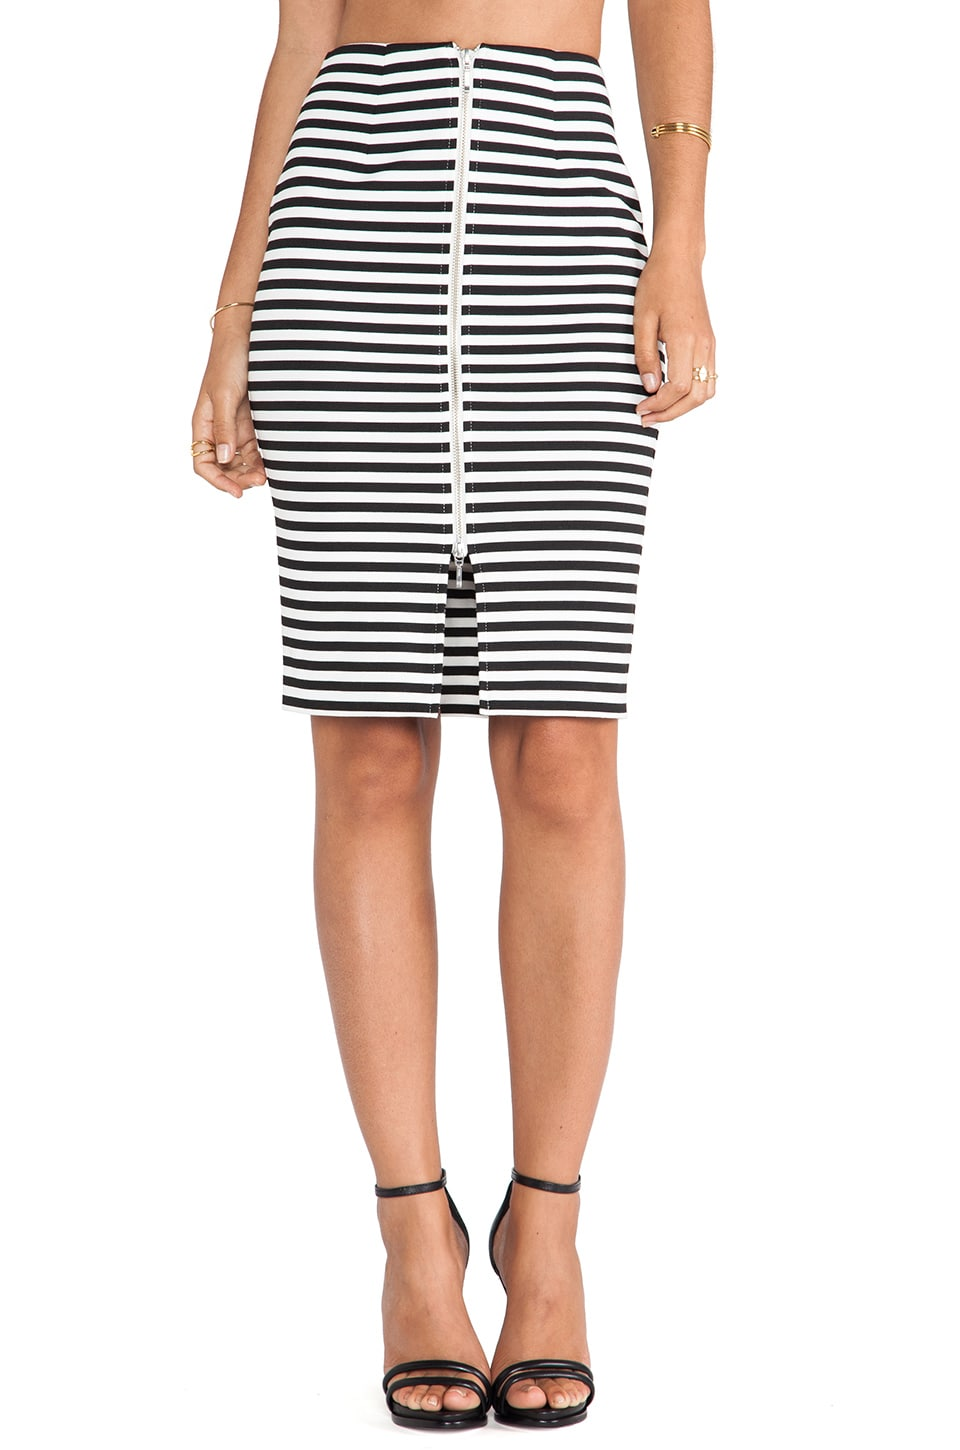 NICHOLAS Stripe Ponti Pencil Skirt in Black